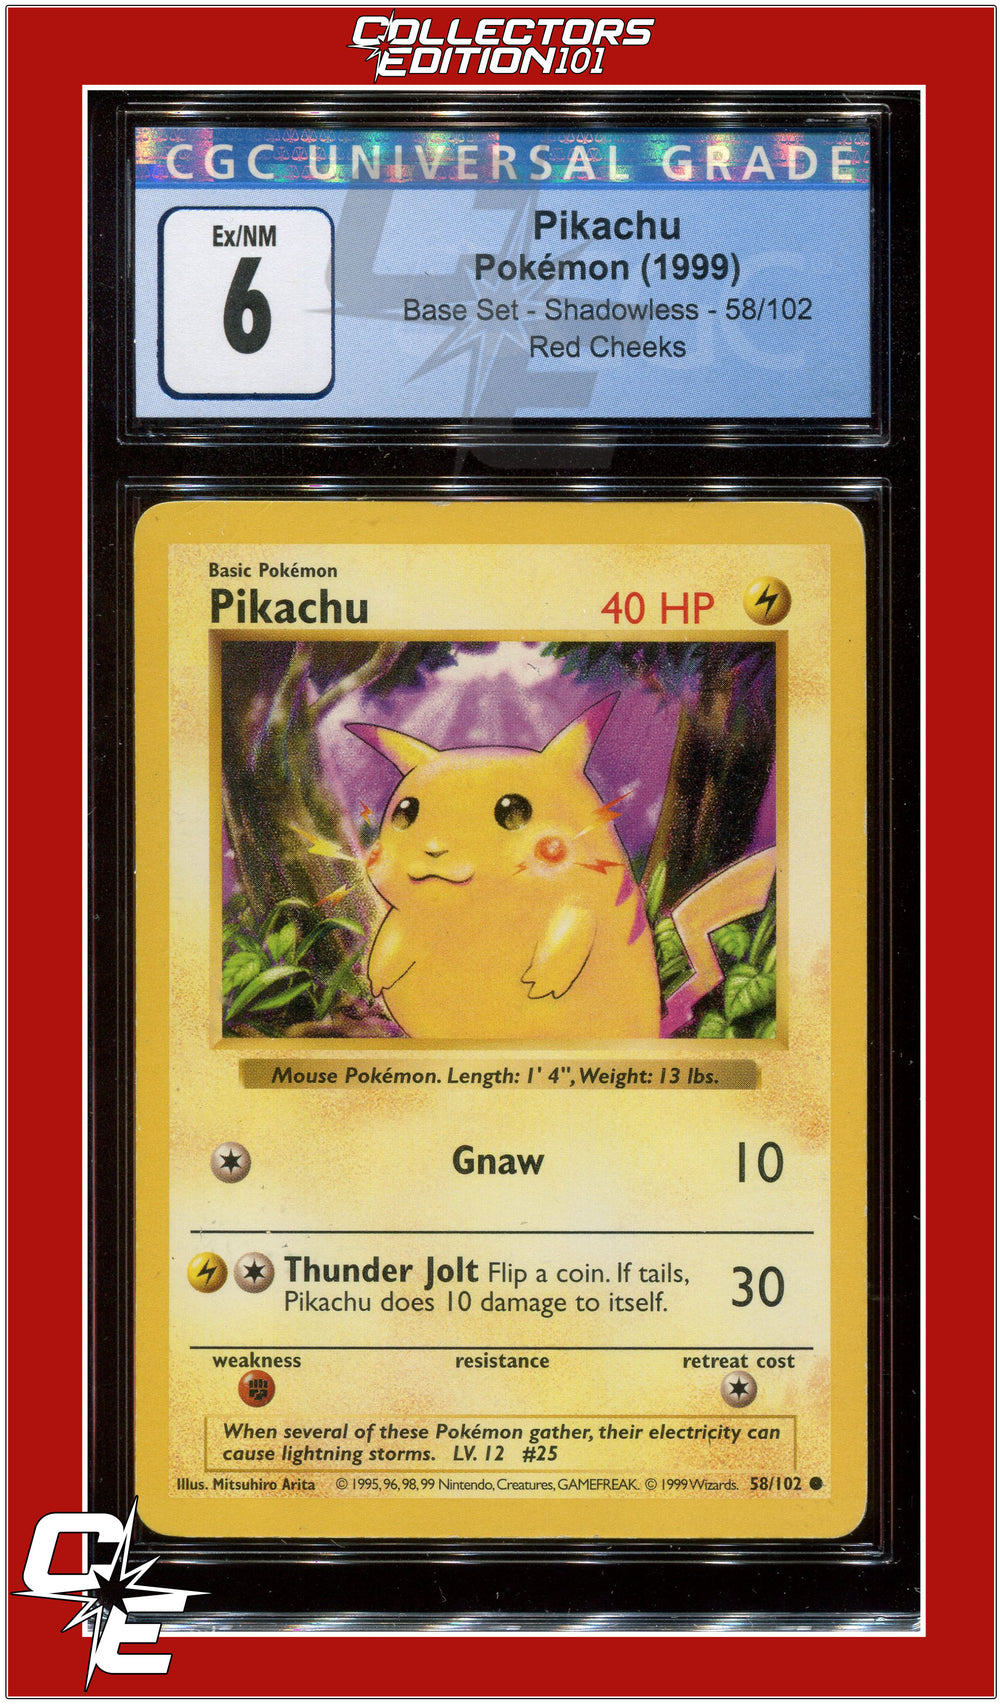 Base Set Shadowless Pikachu Red Cheeks 58/102 CGC 6 - PSA BGS